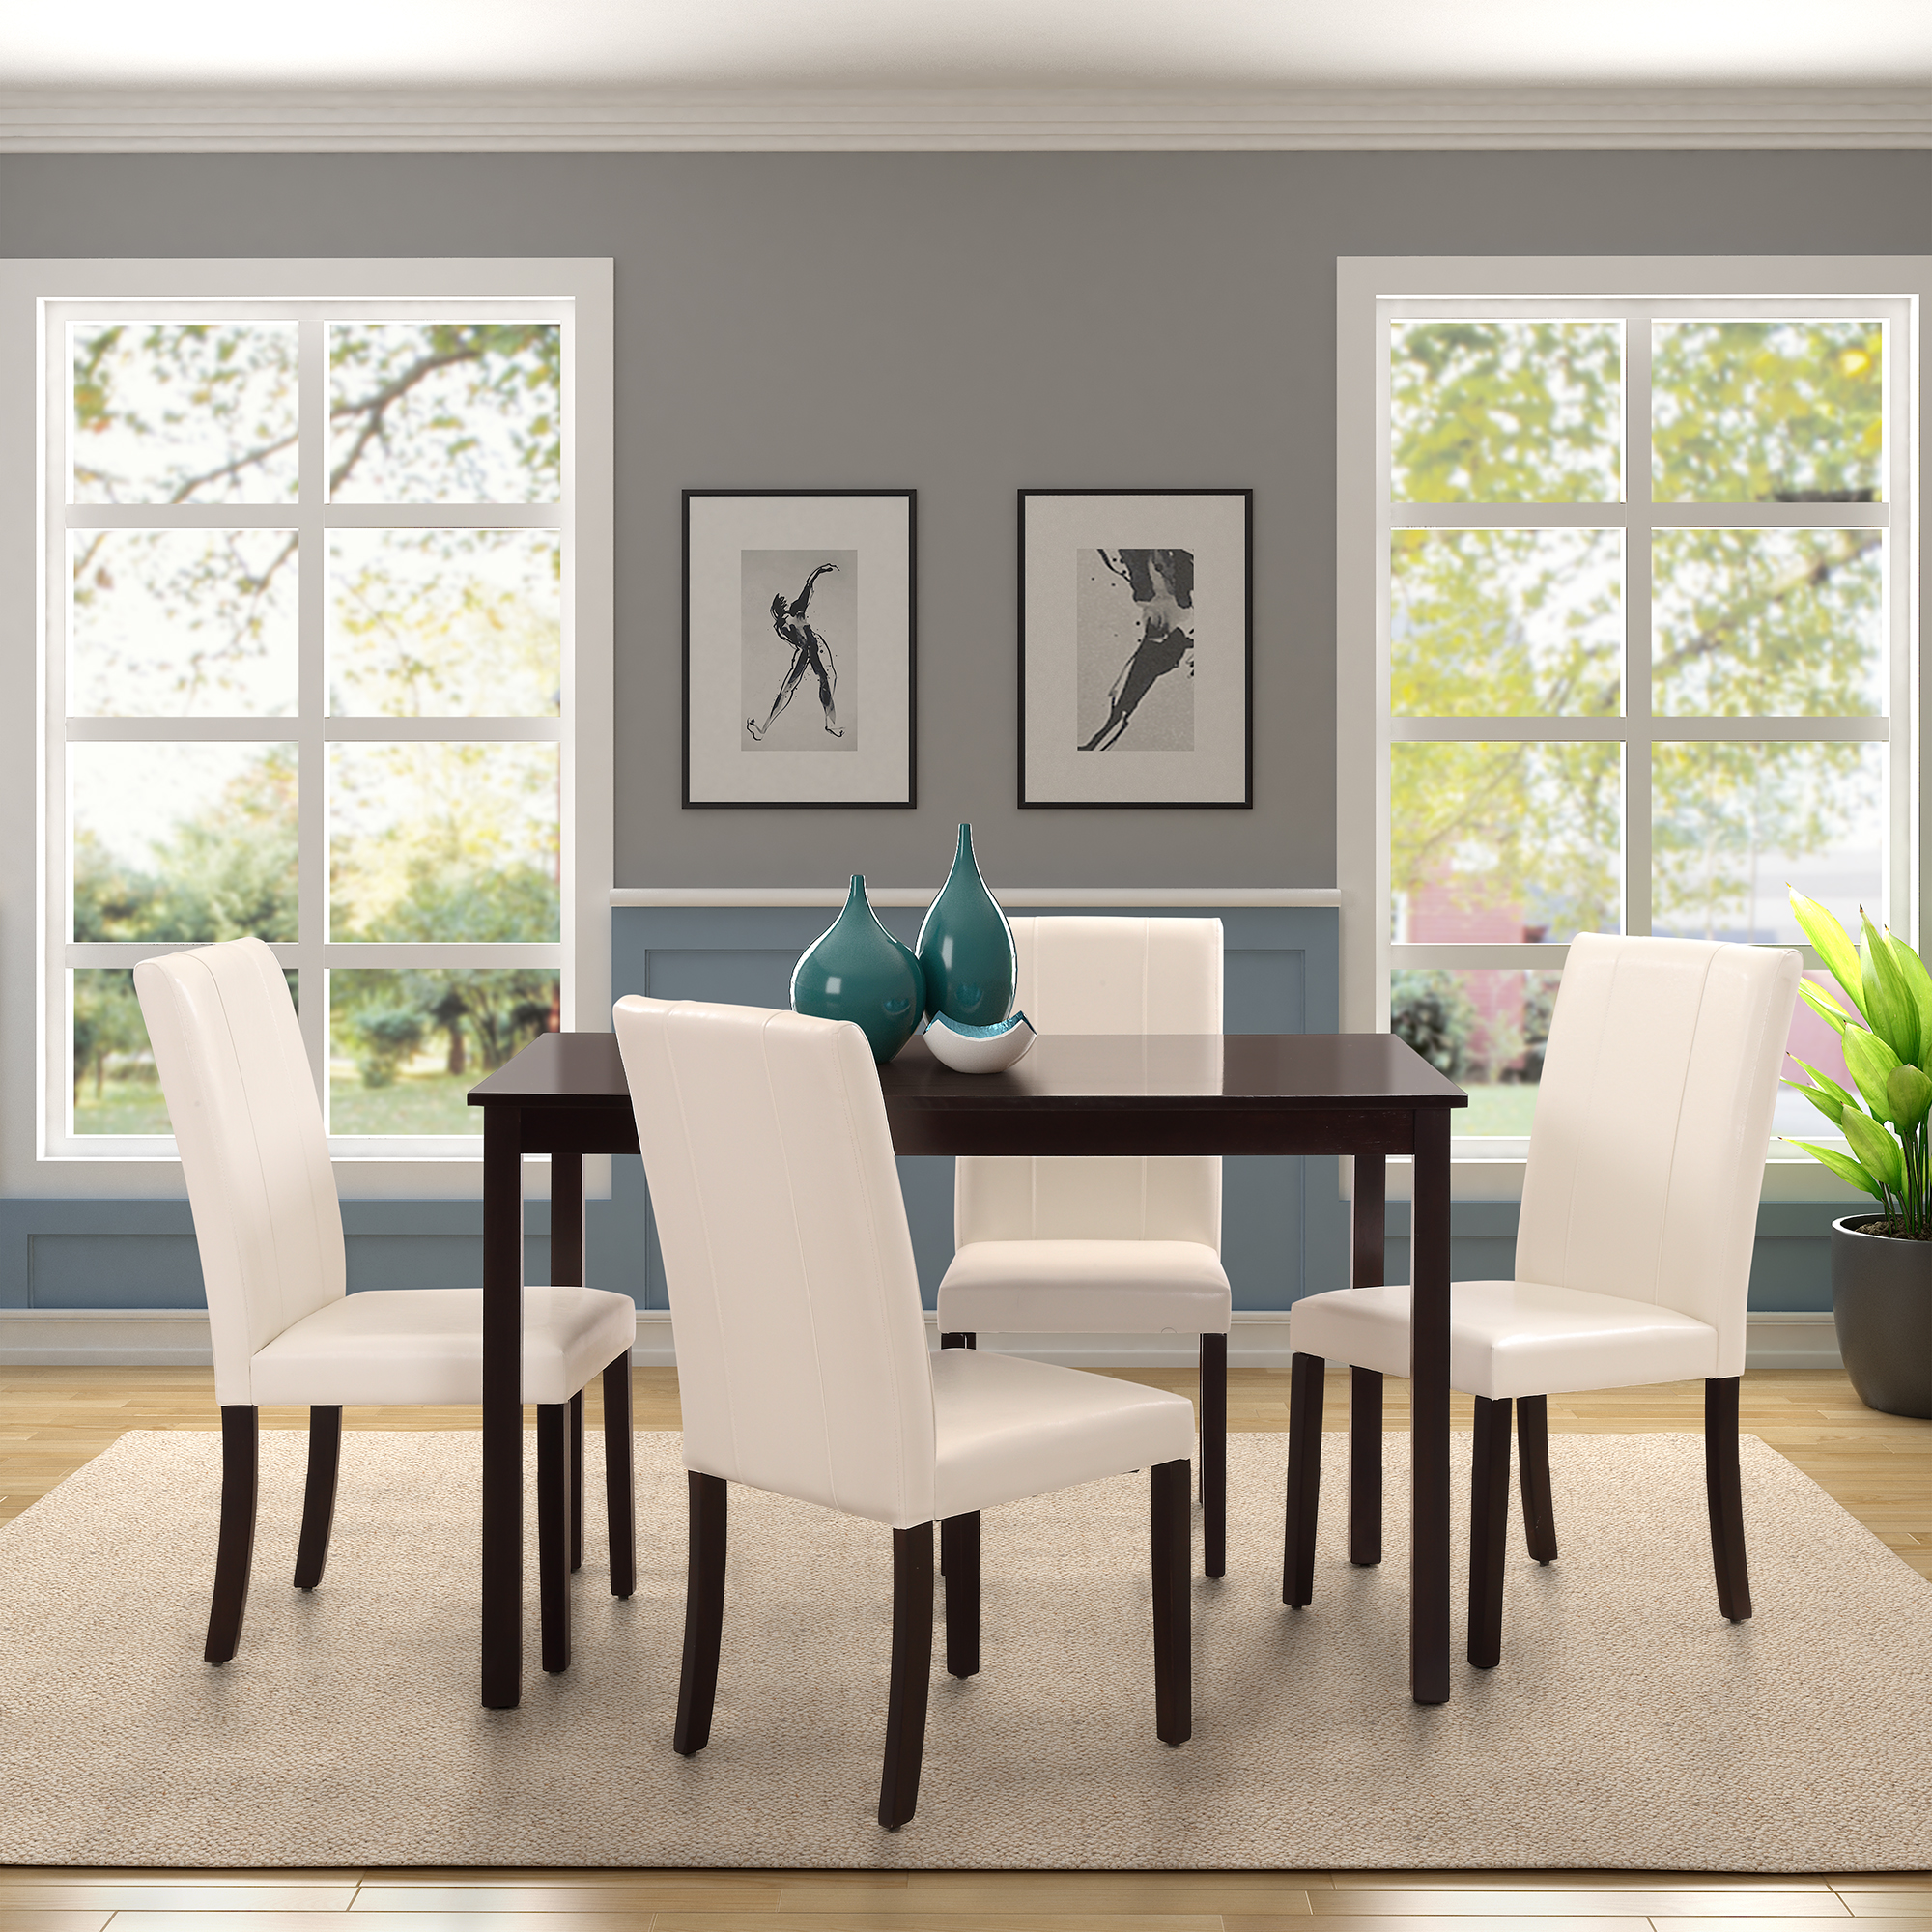 Dining Room Upholstered Chairs Harper Bright Designs Dining Table And Upholstered Chairs 5 Piece Dining Set Multiple Colors